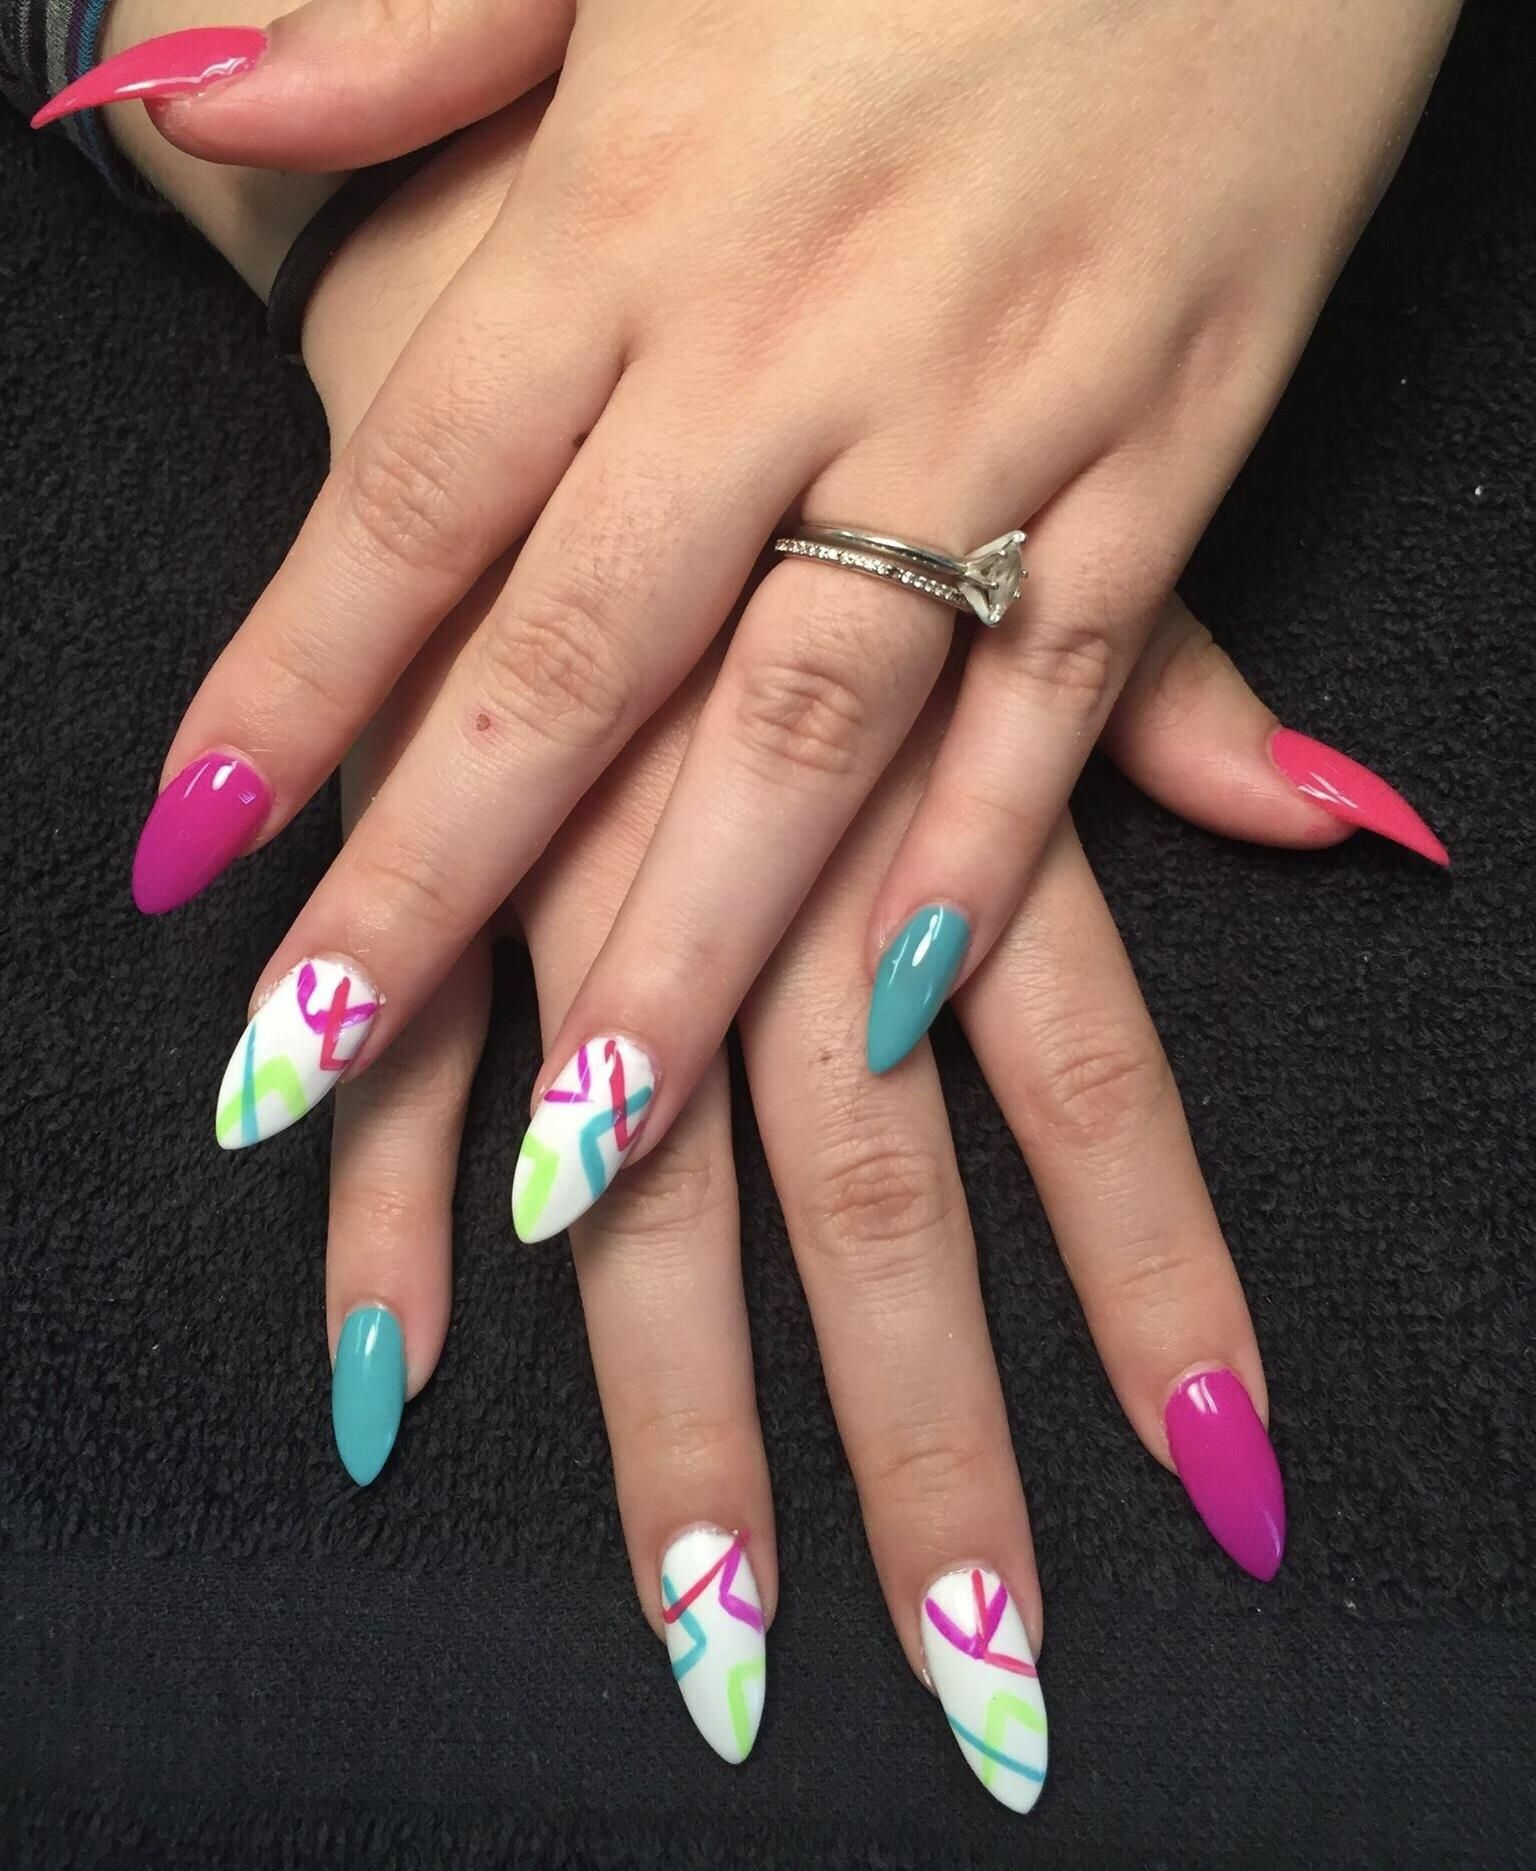 Traditional Full Set Of Acrylic Nail Enhancements 40 Make Nail Enhancements Your Own With Custom Nail Art T Pedicure Nail Art Manicure Manicure And Pedicure